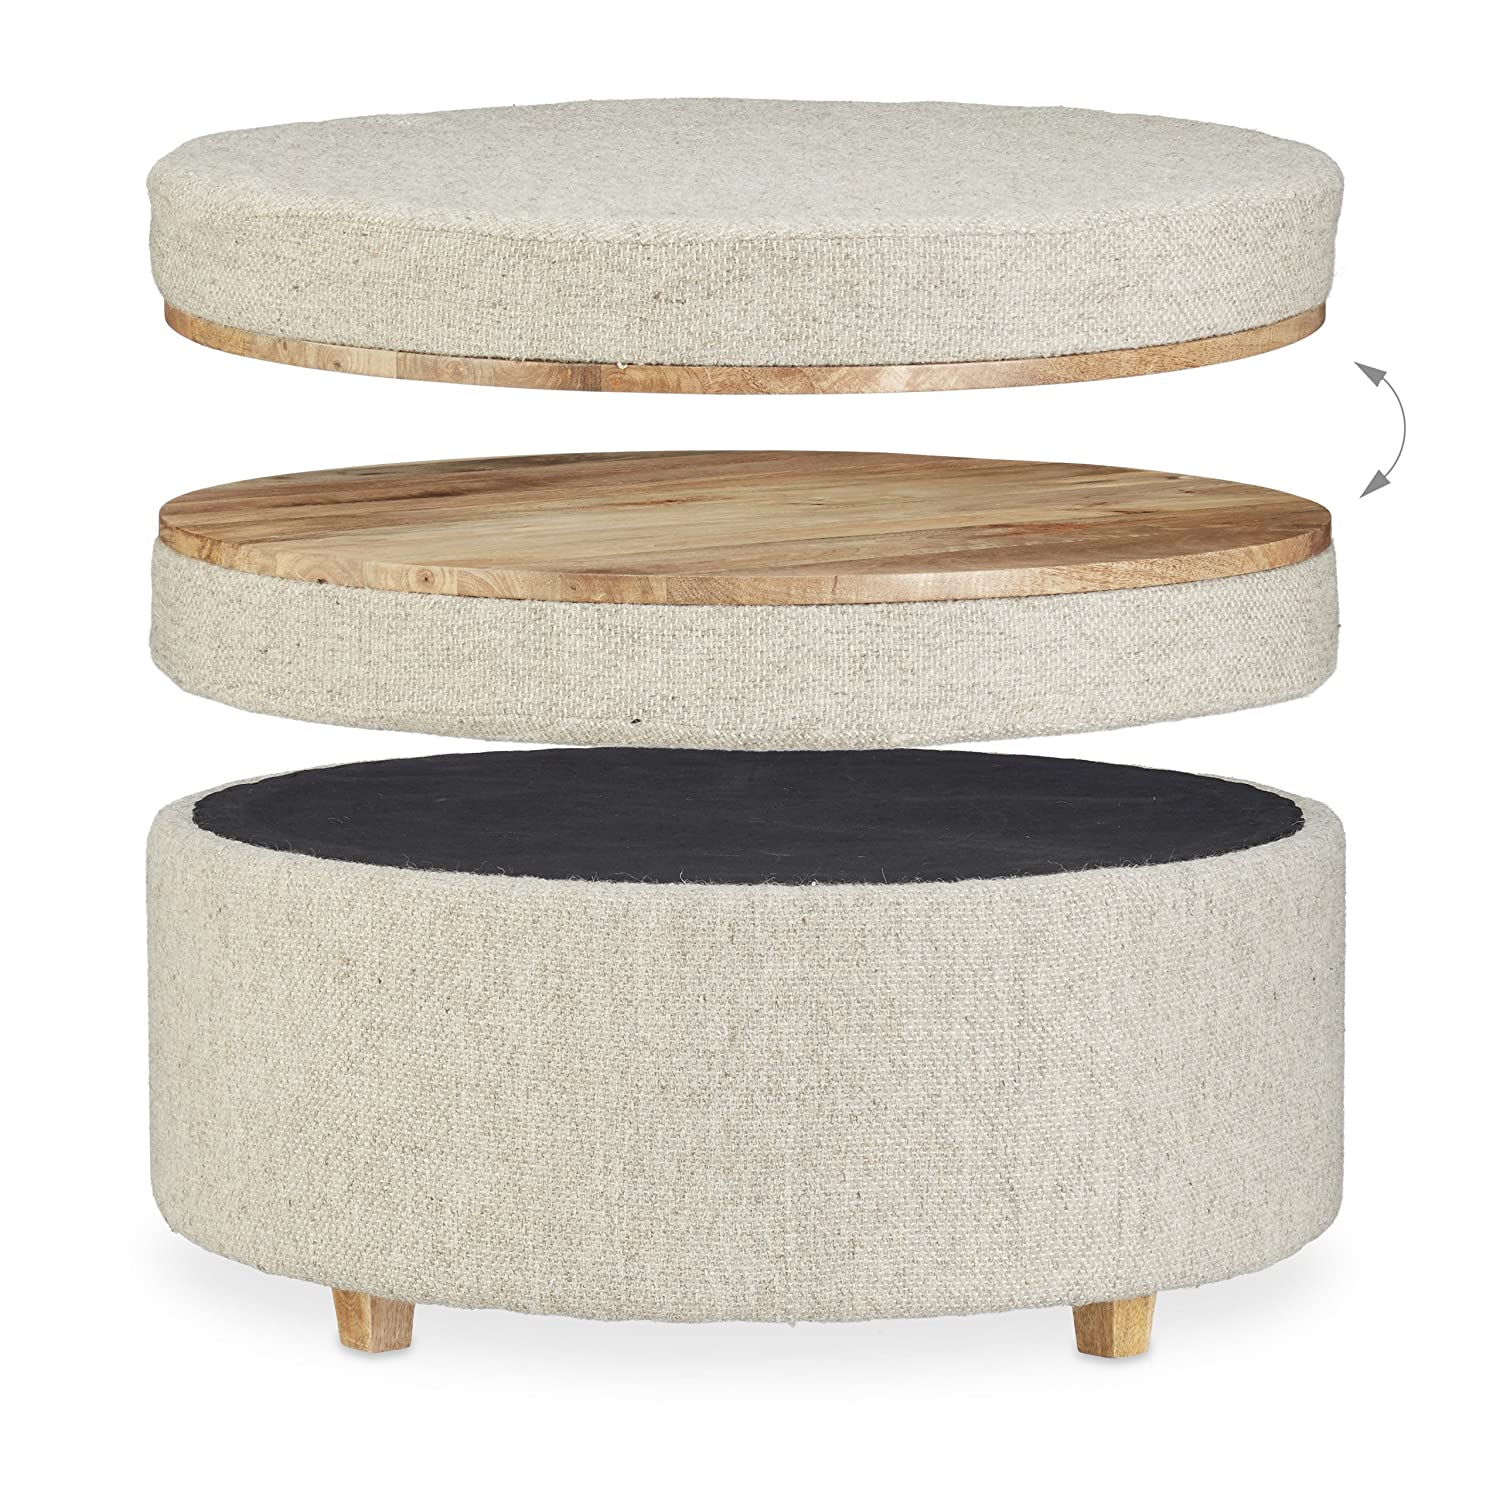 Fabulous Native Home Stool Table Combination Footstool Ottoman And Ncnpc Chair Design For Home Ncnpcorg